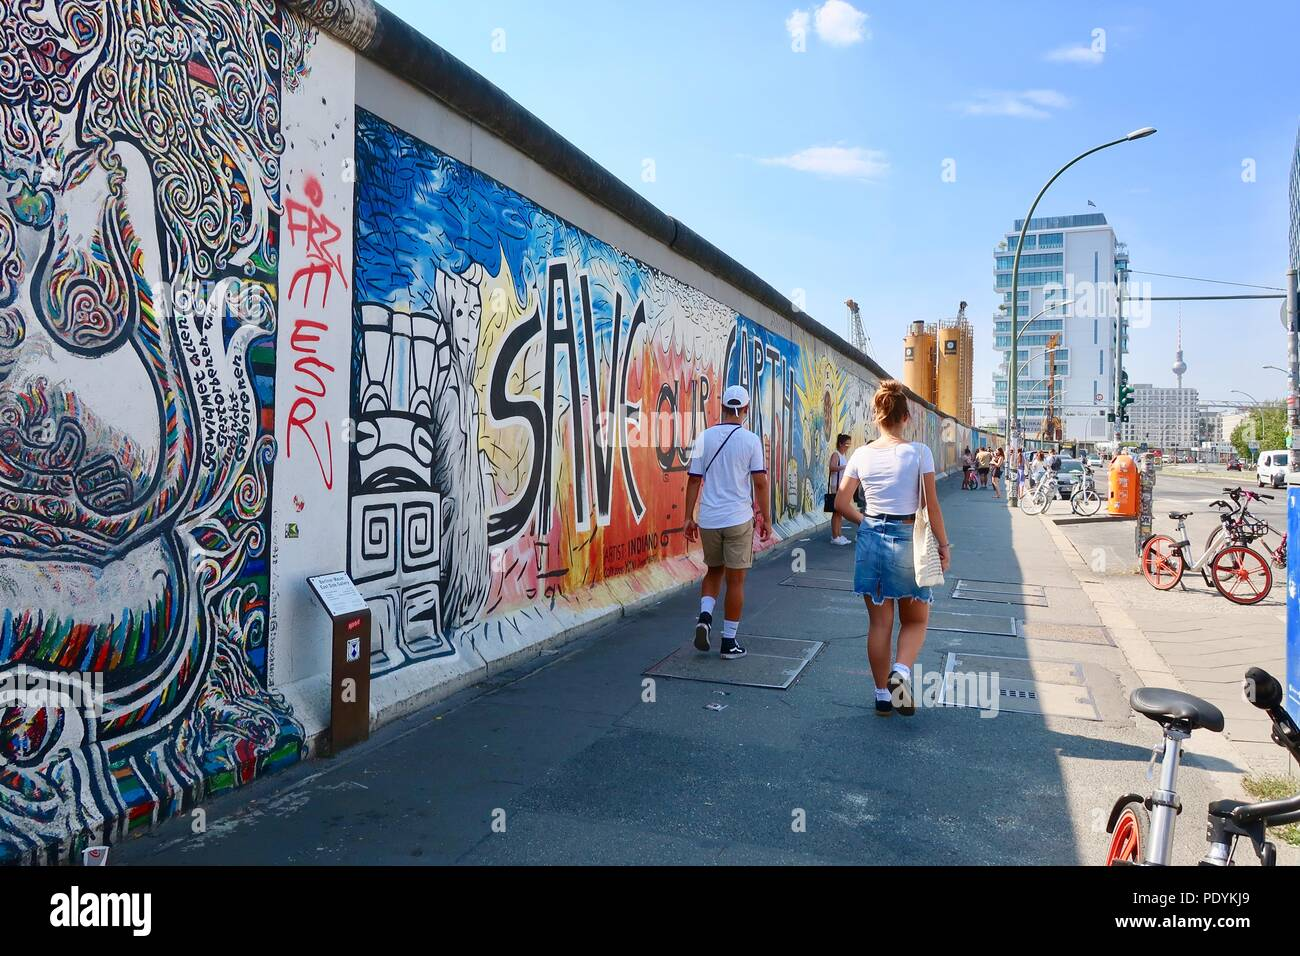 East Side Gallery Friedrichshain Berlin Painted And Graffitied Remains Of The Berlin Wall In Germany Hot Summer Afternoon In August 2018 Stock Photo Alamy